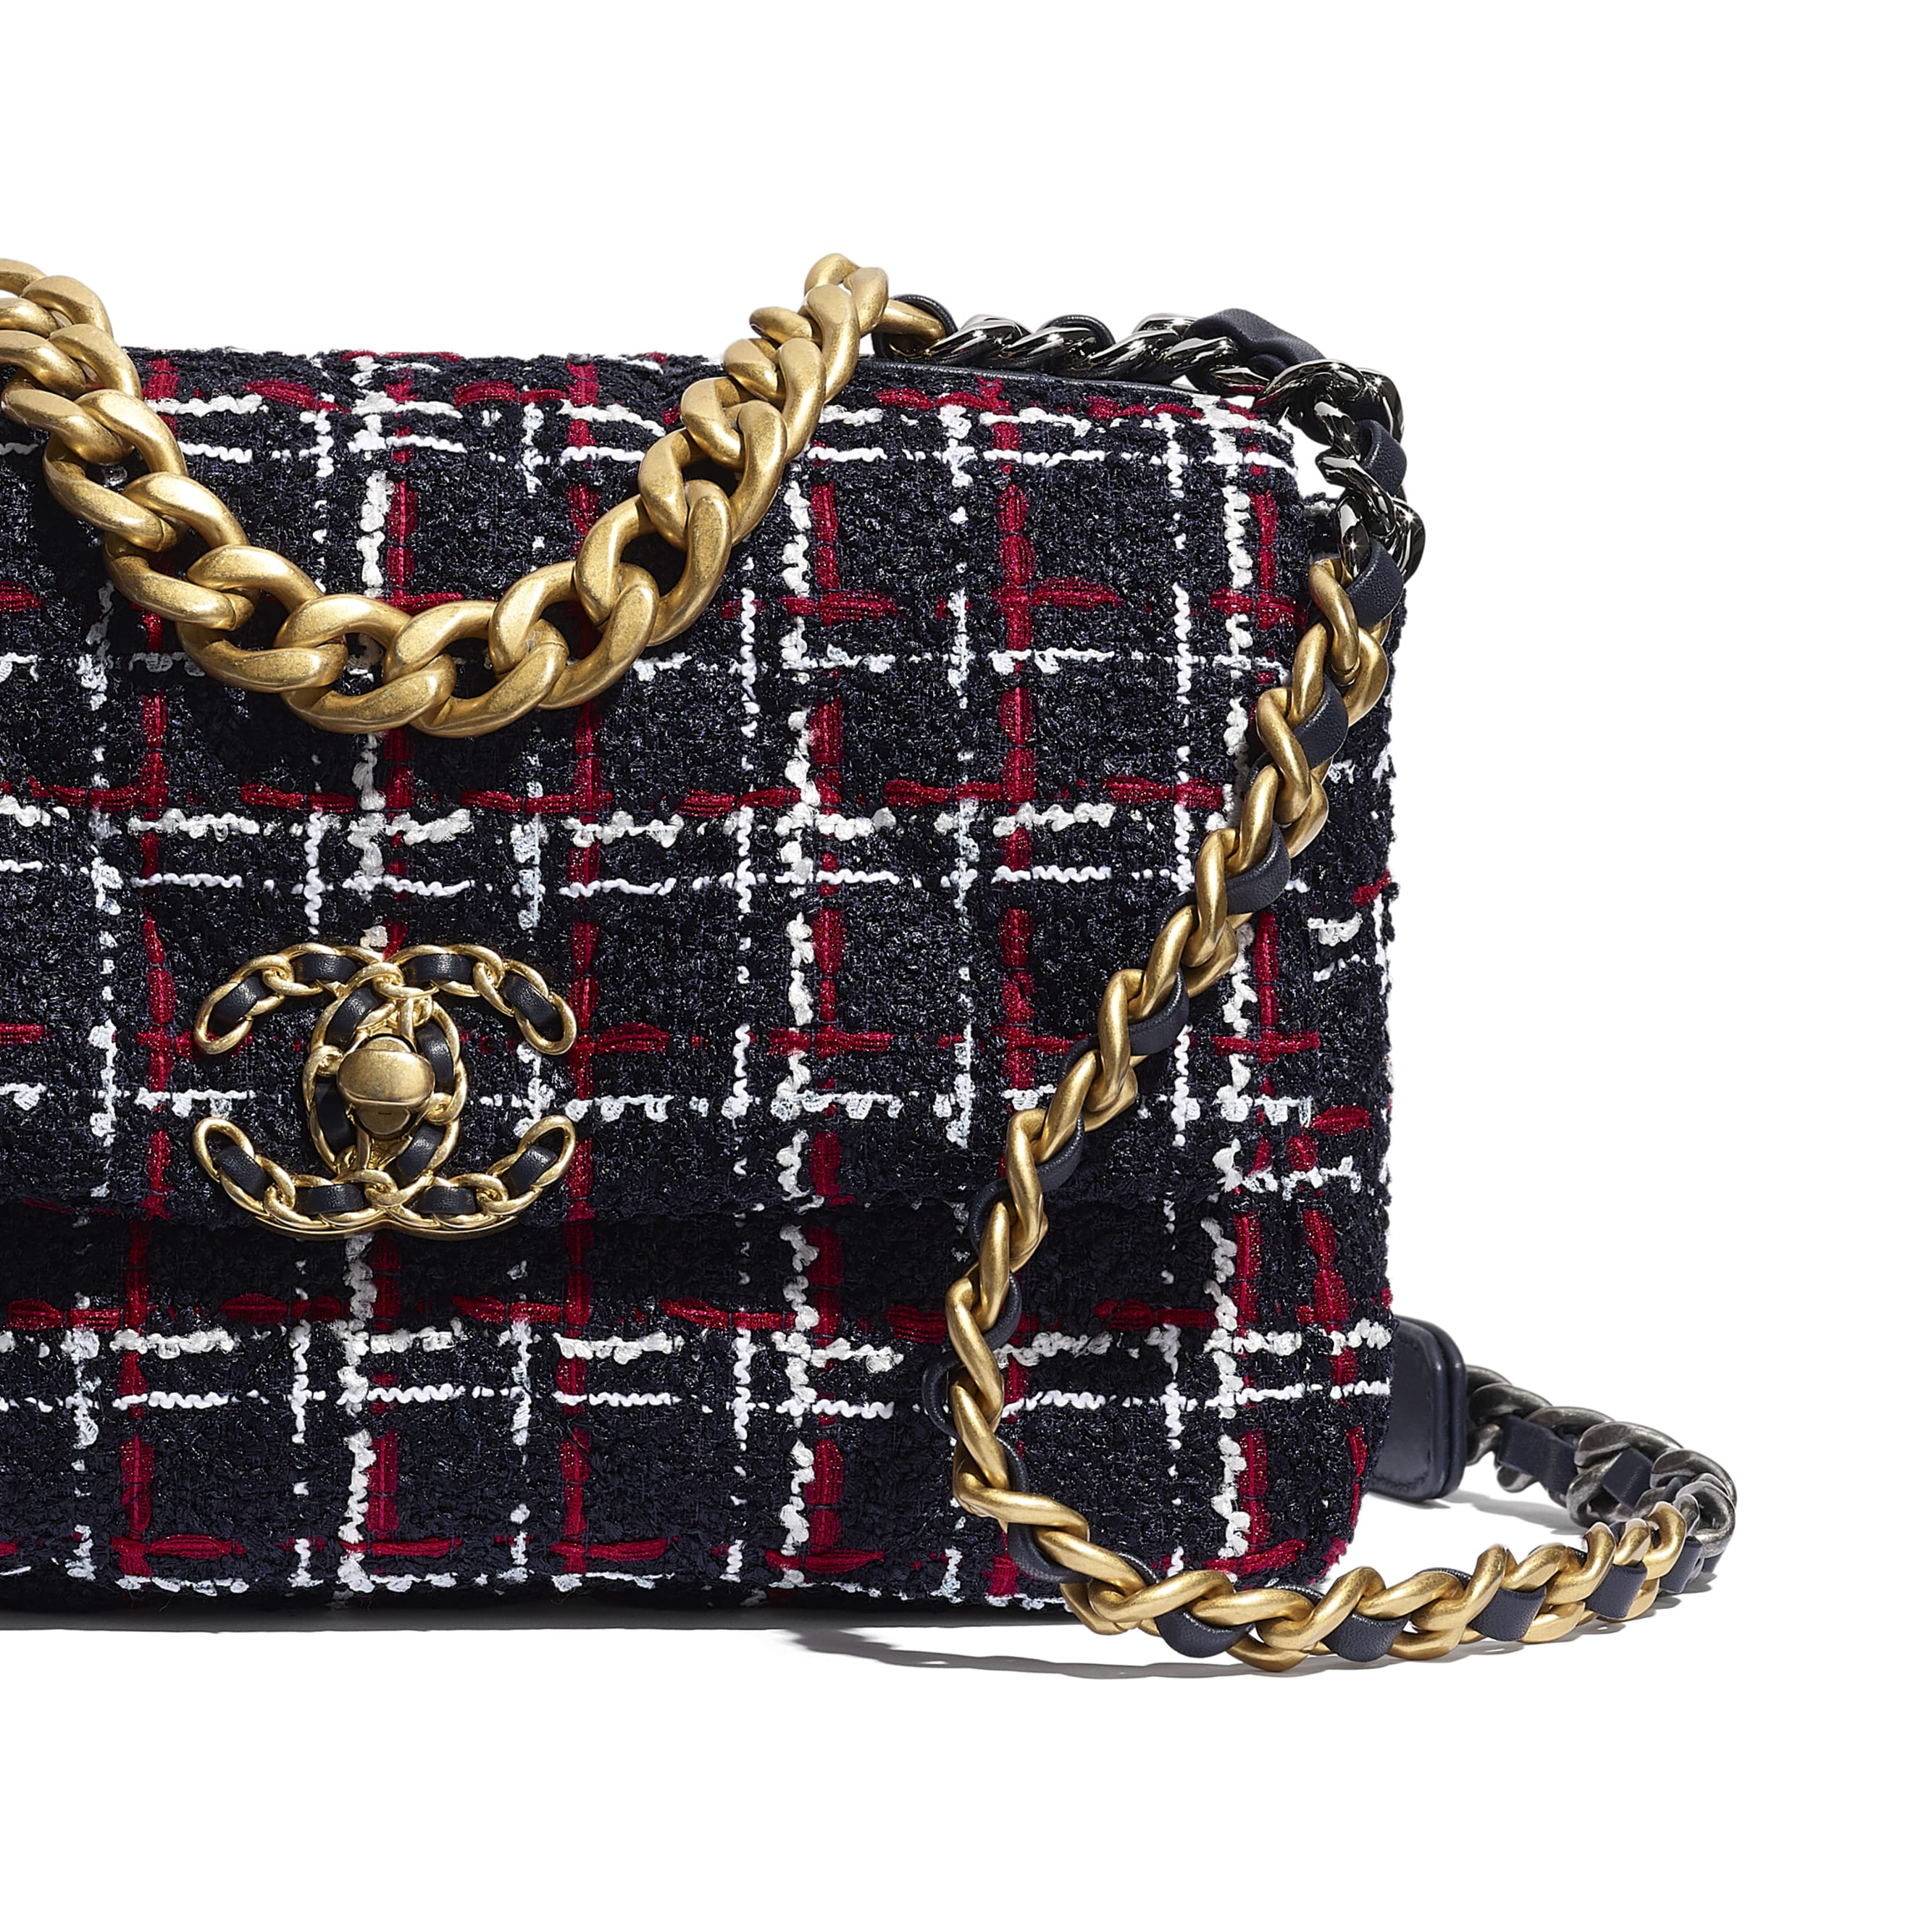 CHANEL 19 Flap Bag - Navy Blue, White & Red - Tweed, Gold-Tone, Silver-Tone & Ruthenium-Finish Metal - CHANEL - Extra view - see standard sized version